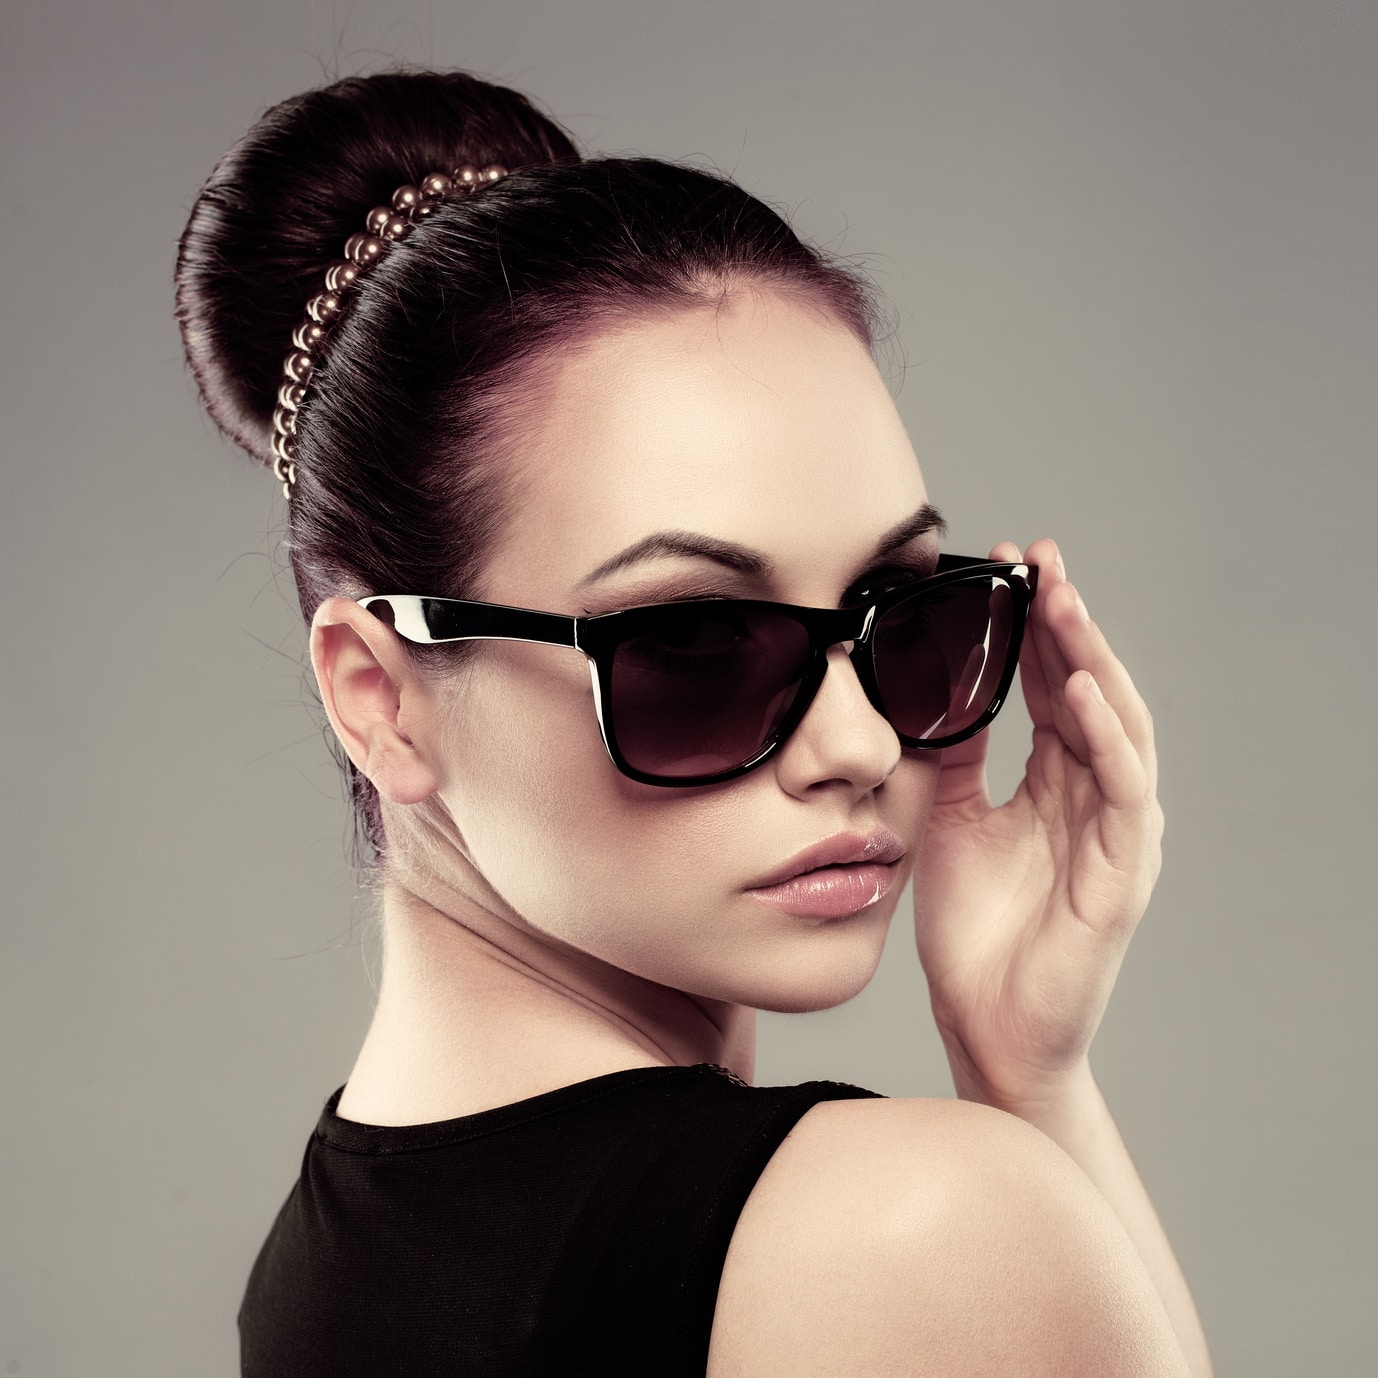 Summer fashion accessories for the ladies #summerfashion #fashionaccessories